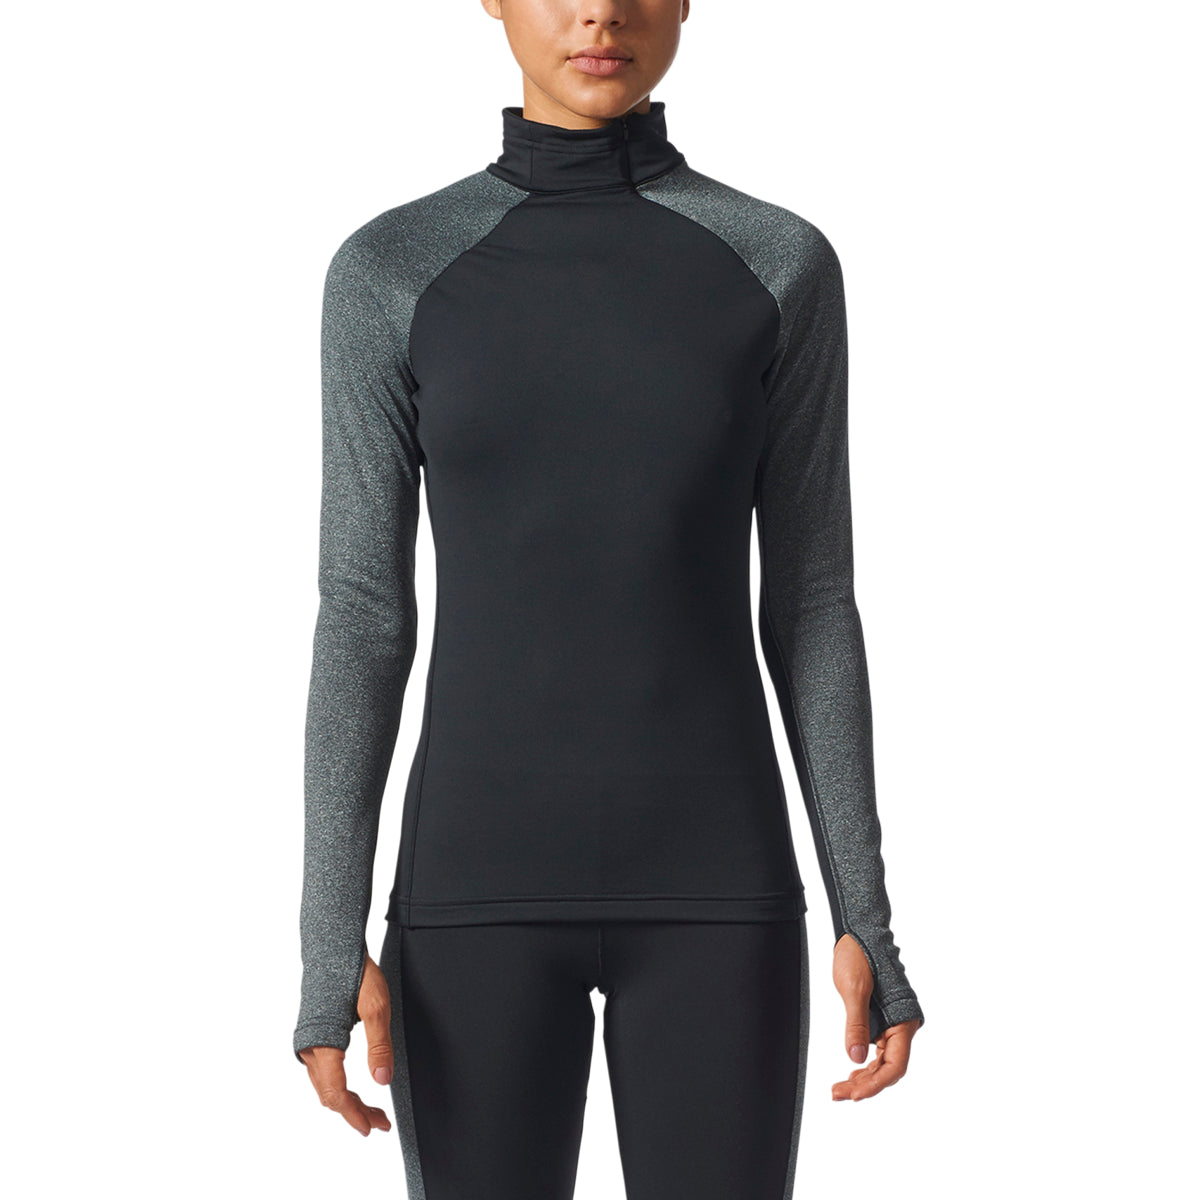 Adidas Tech Fit cold weather Long Sleeve Top Aries Apparel